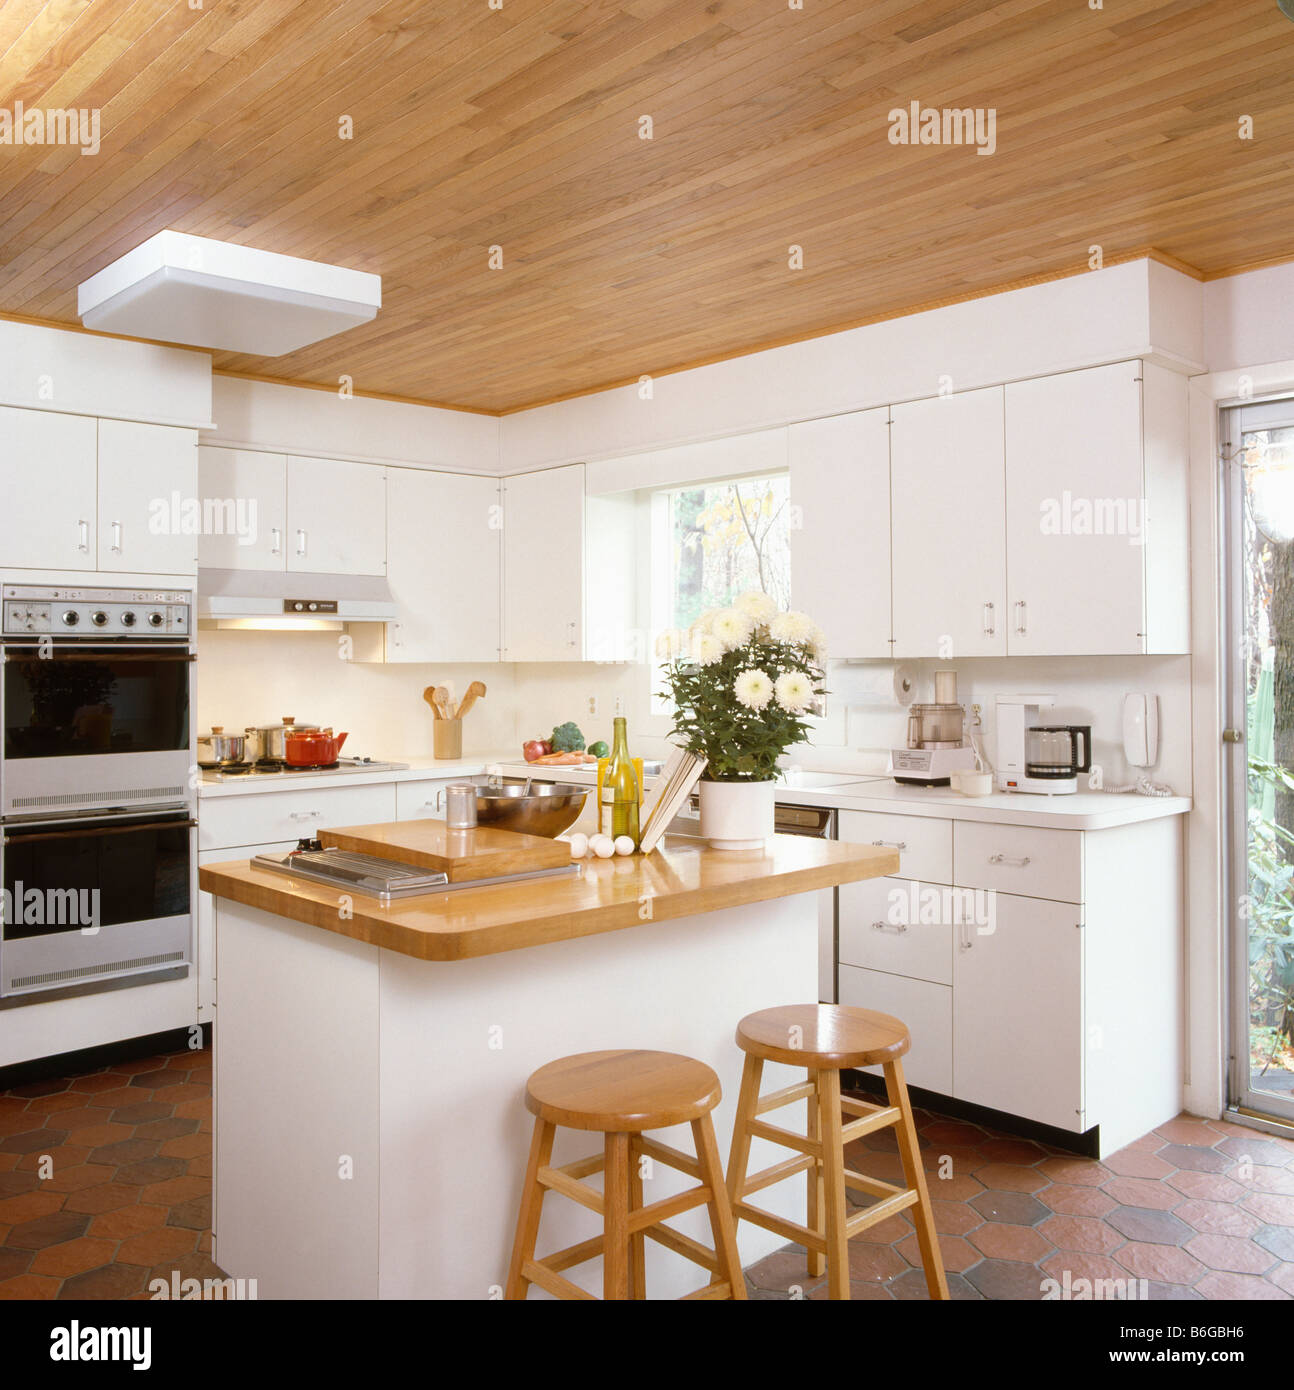 Kitchen Ideas Wooden Worktops: Wooden Stools At Island Unit With Wooden Worktop In Modern